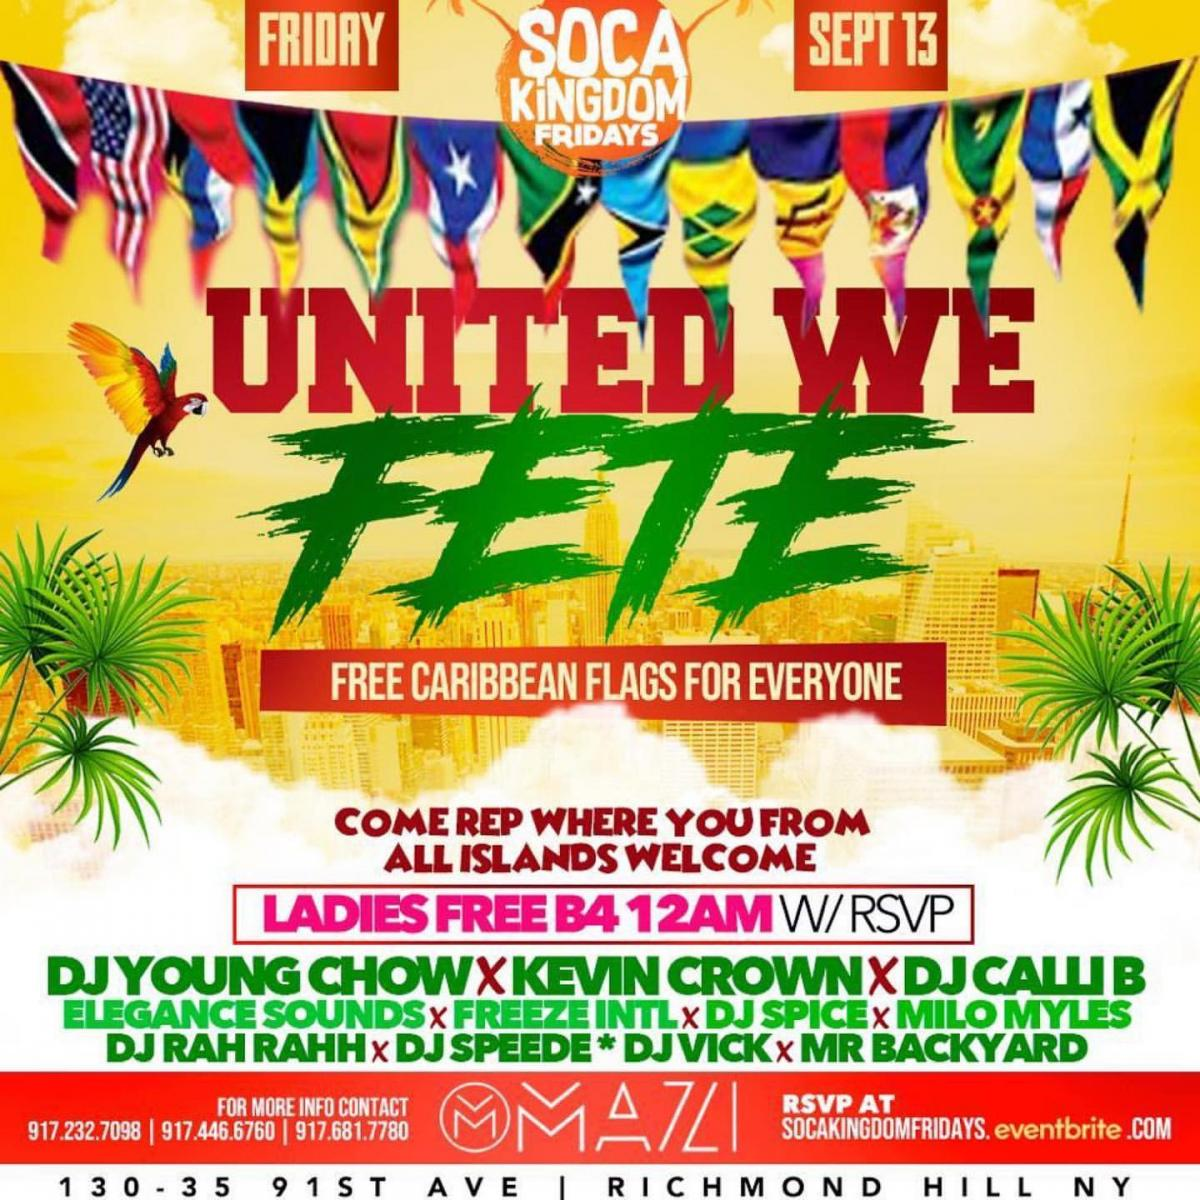 United We Fete flyer or graphic.